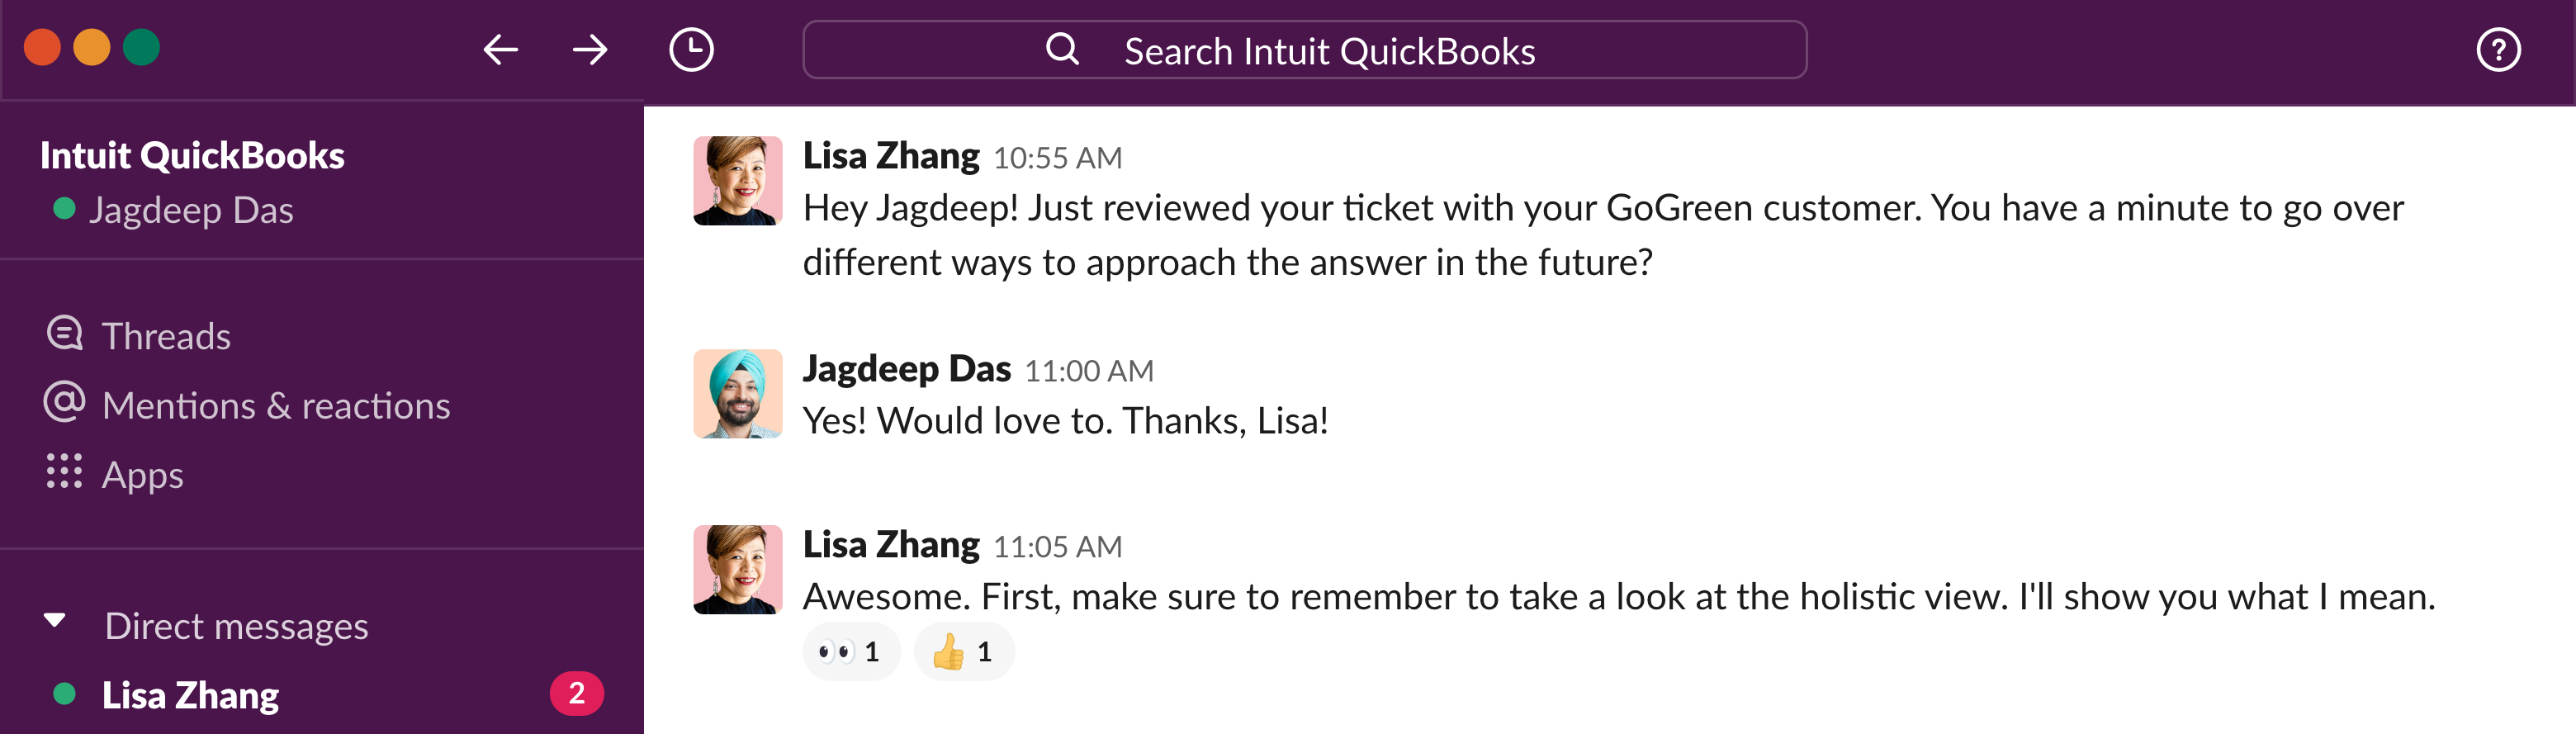 Direct message in Slack between Intuit product champion and support agent